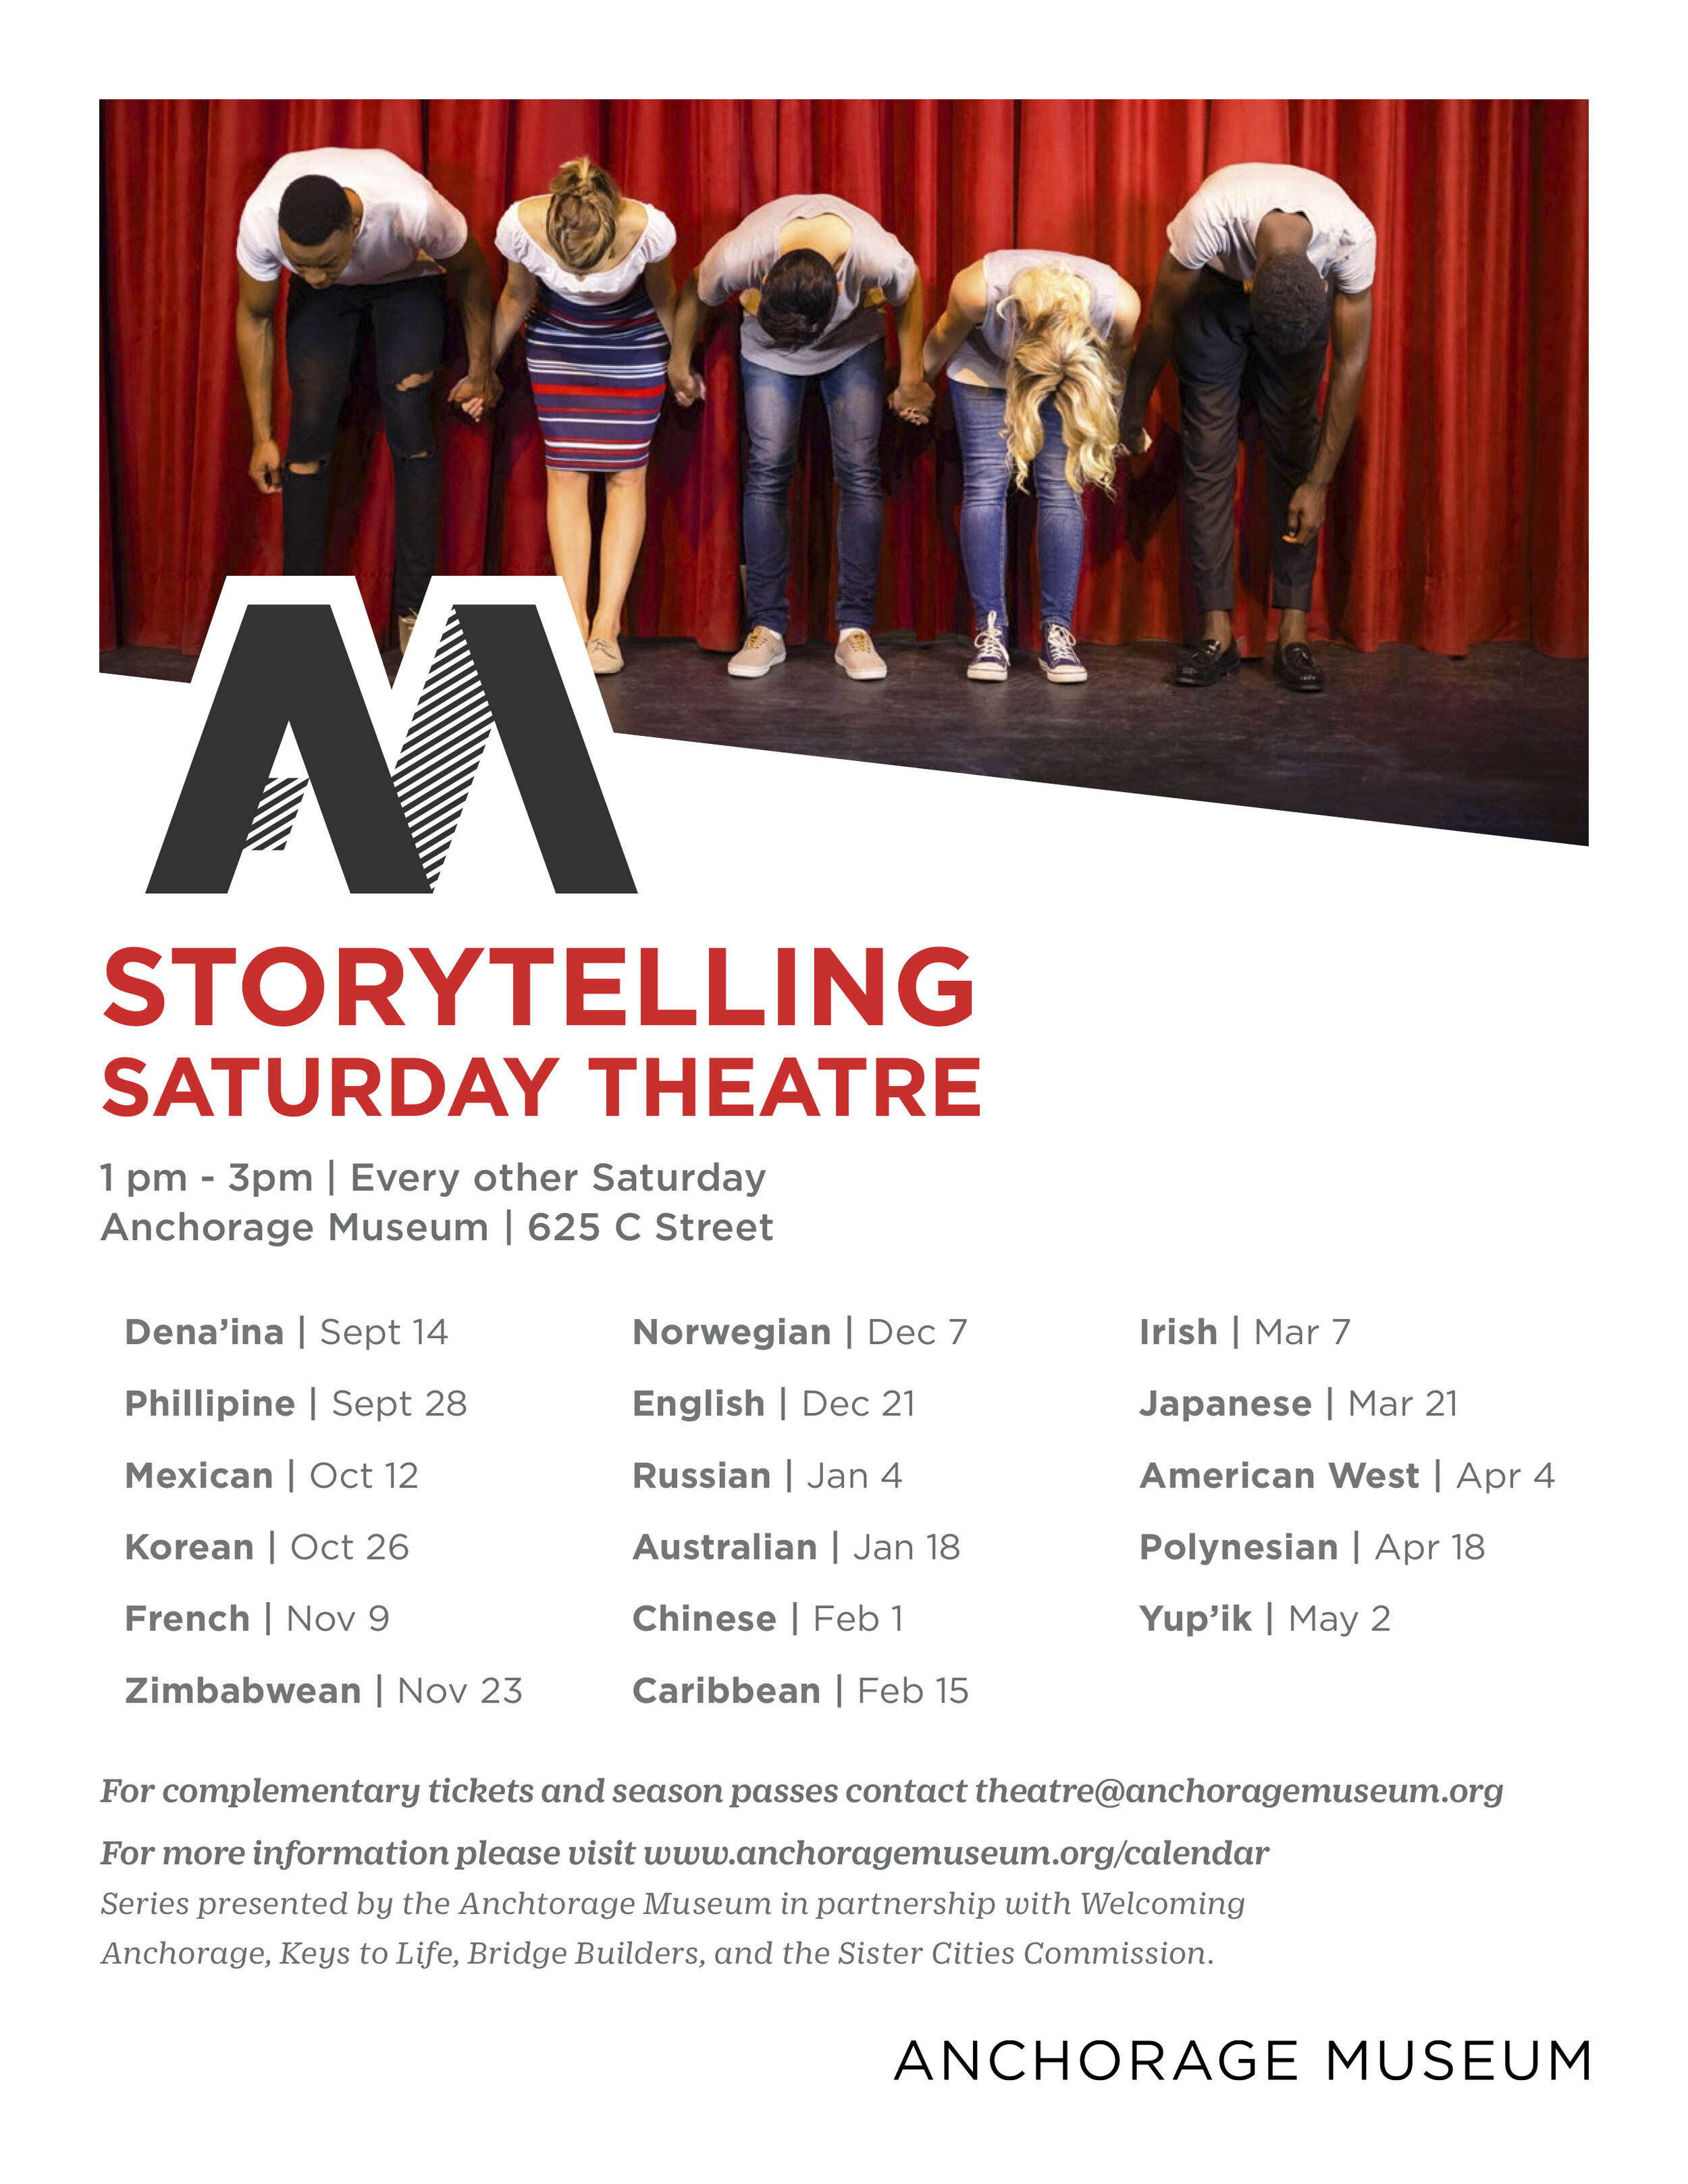 StorytellingSaturdaySeries_2019_flyer_8.5x11.jpg